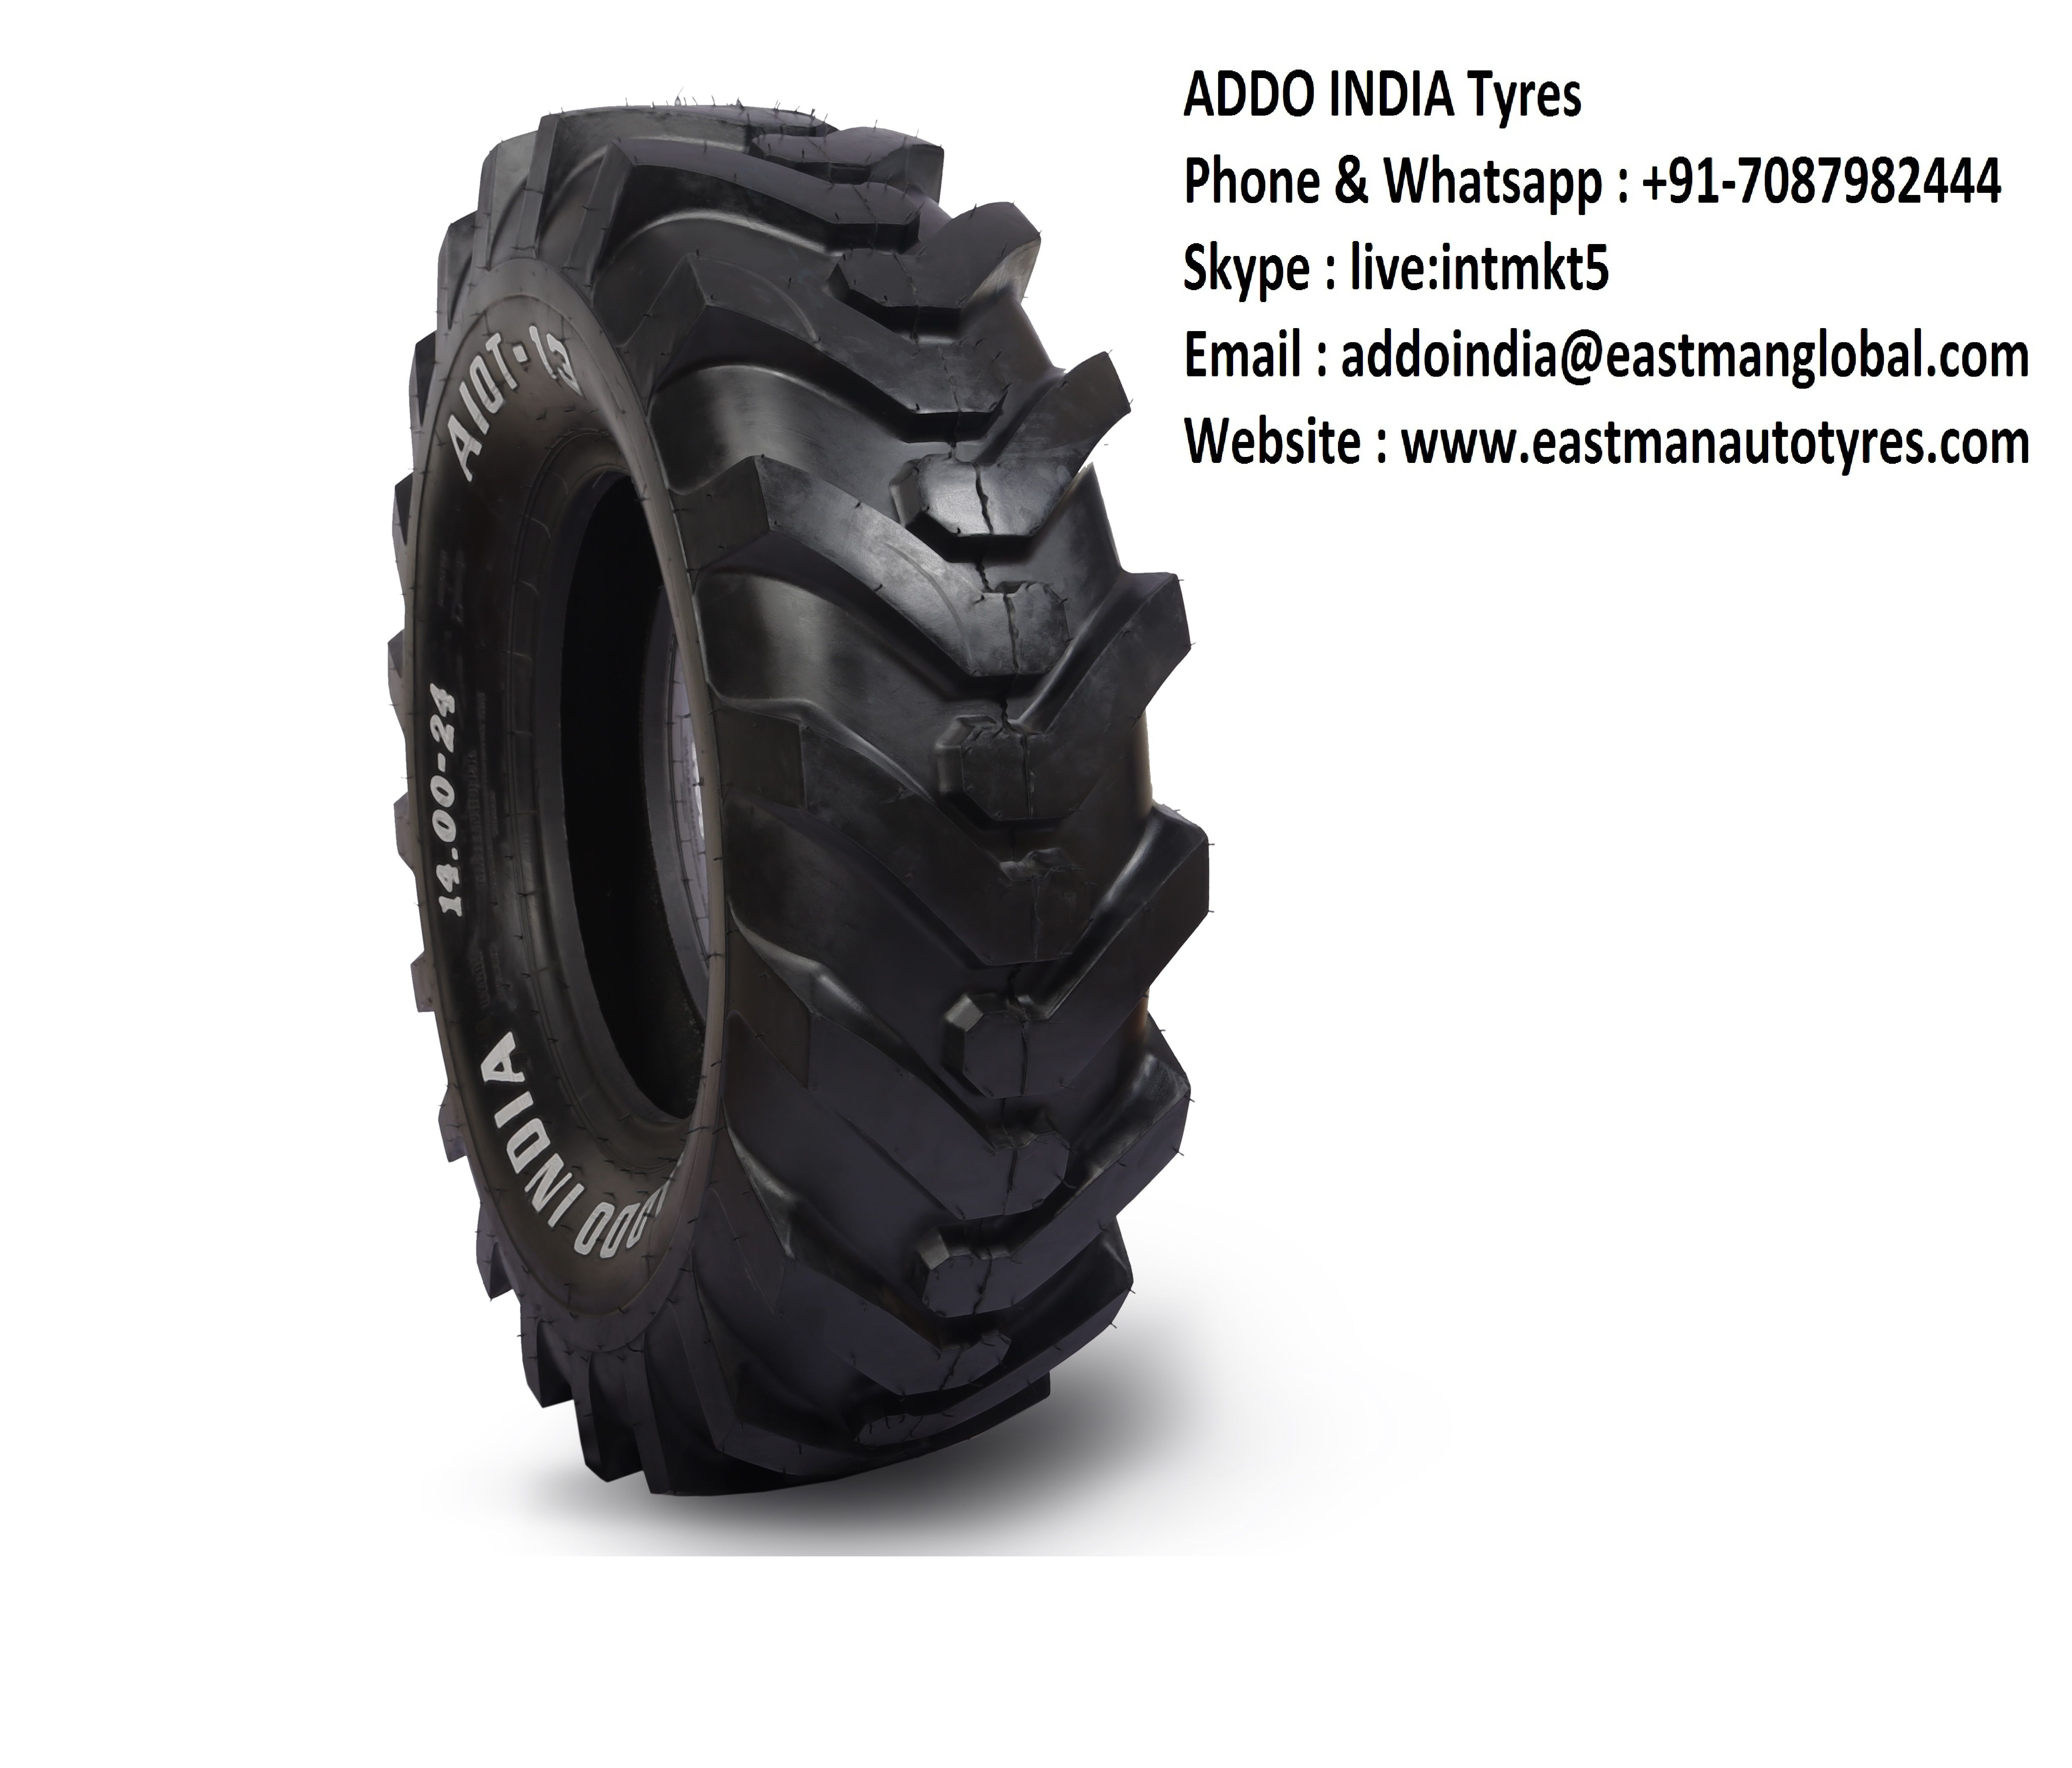 14 00 24 G2l2 Aiot 13 Addo India Tyres Addo Tire Leather Bracelet